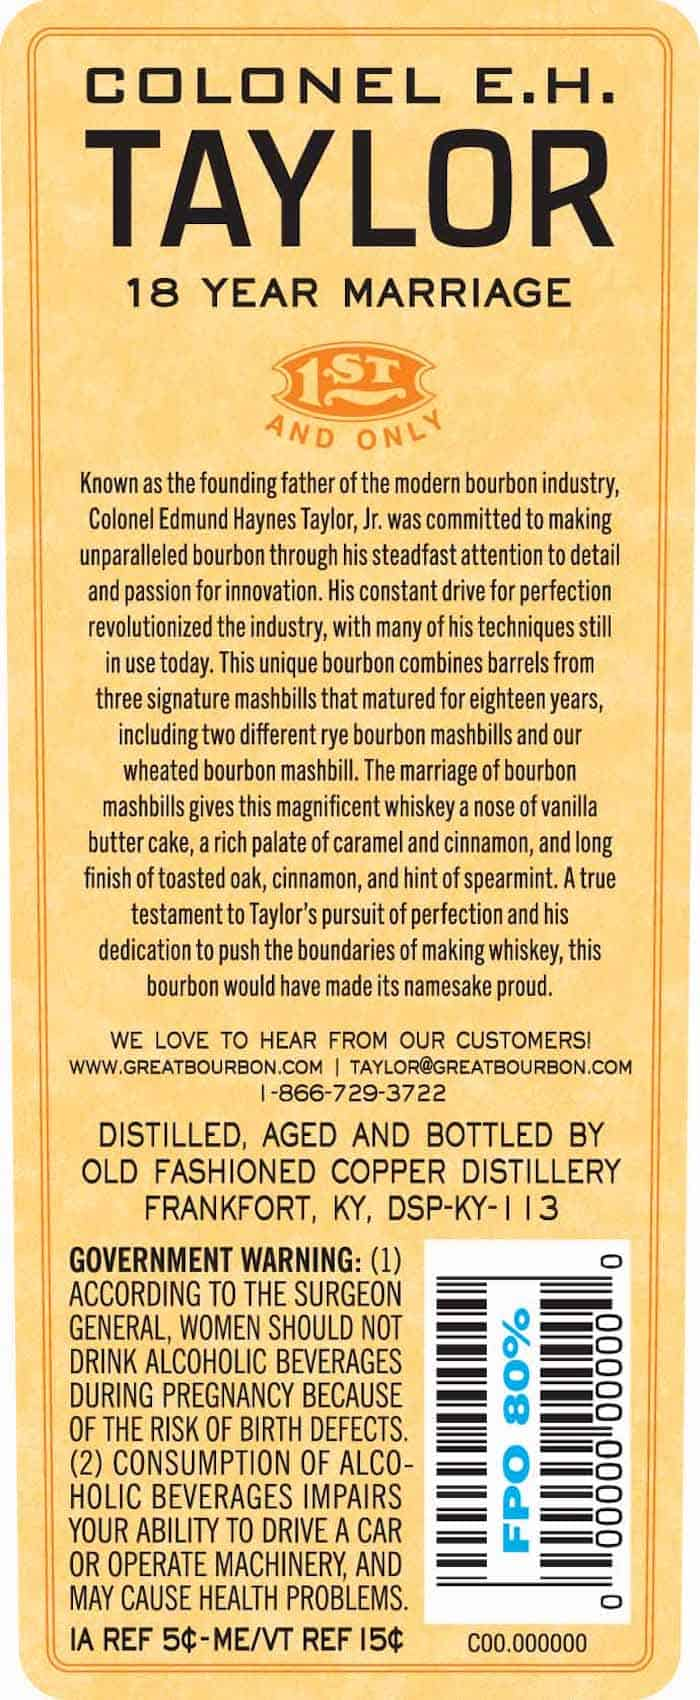 Colonel E.H. Taylor 18 Year Marriage Bourbon back label